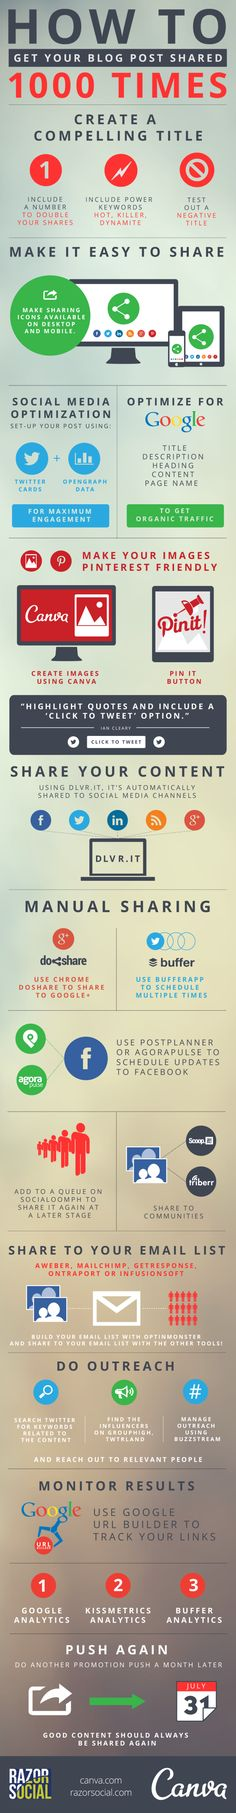 How to Get Your #Blog Post Shared 1,000 Times #infographic